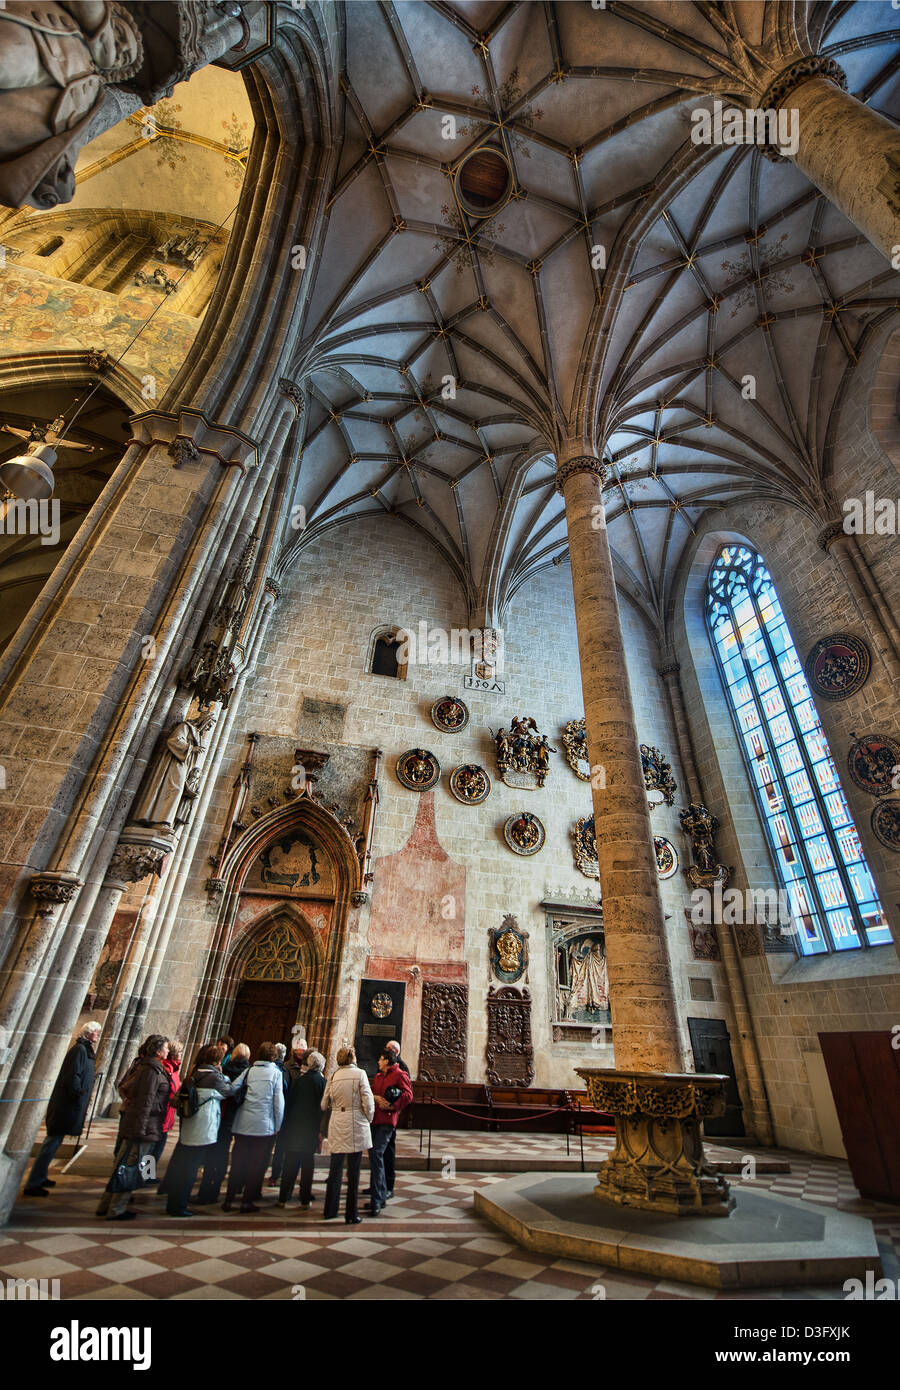 The interior of Ulm Minster in Germany, a Gothic church begun in the 14th century and currently the tallest church in the world. Stock Photo